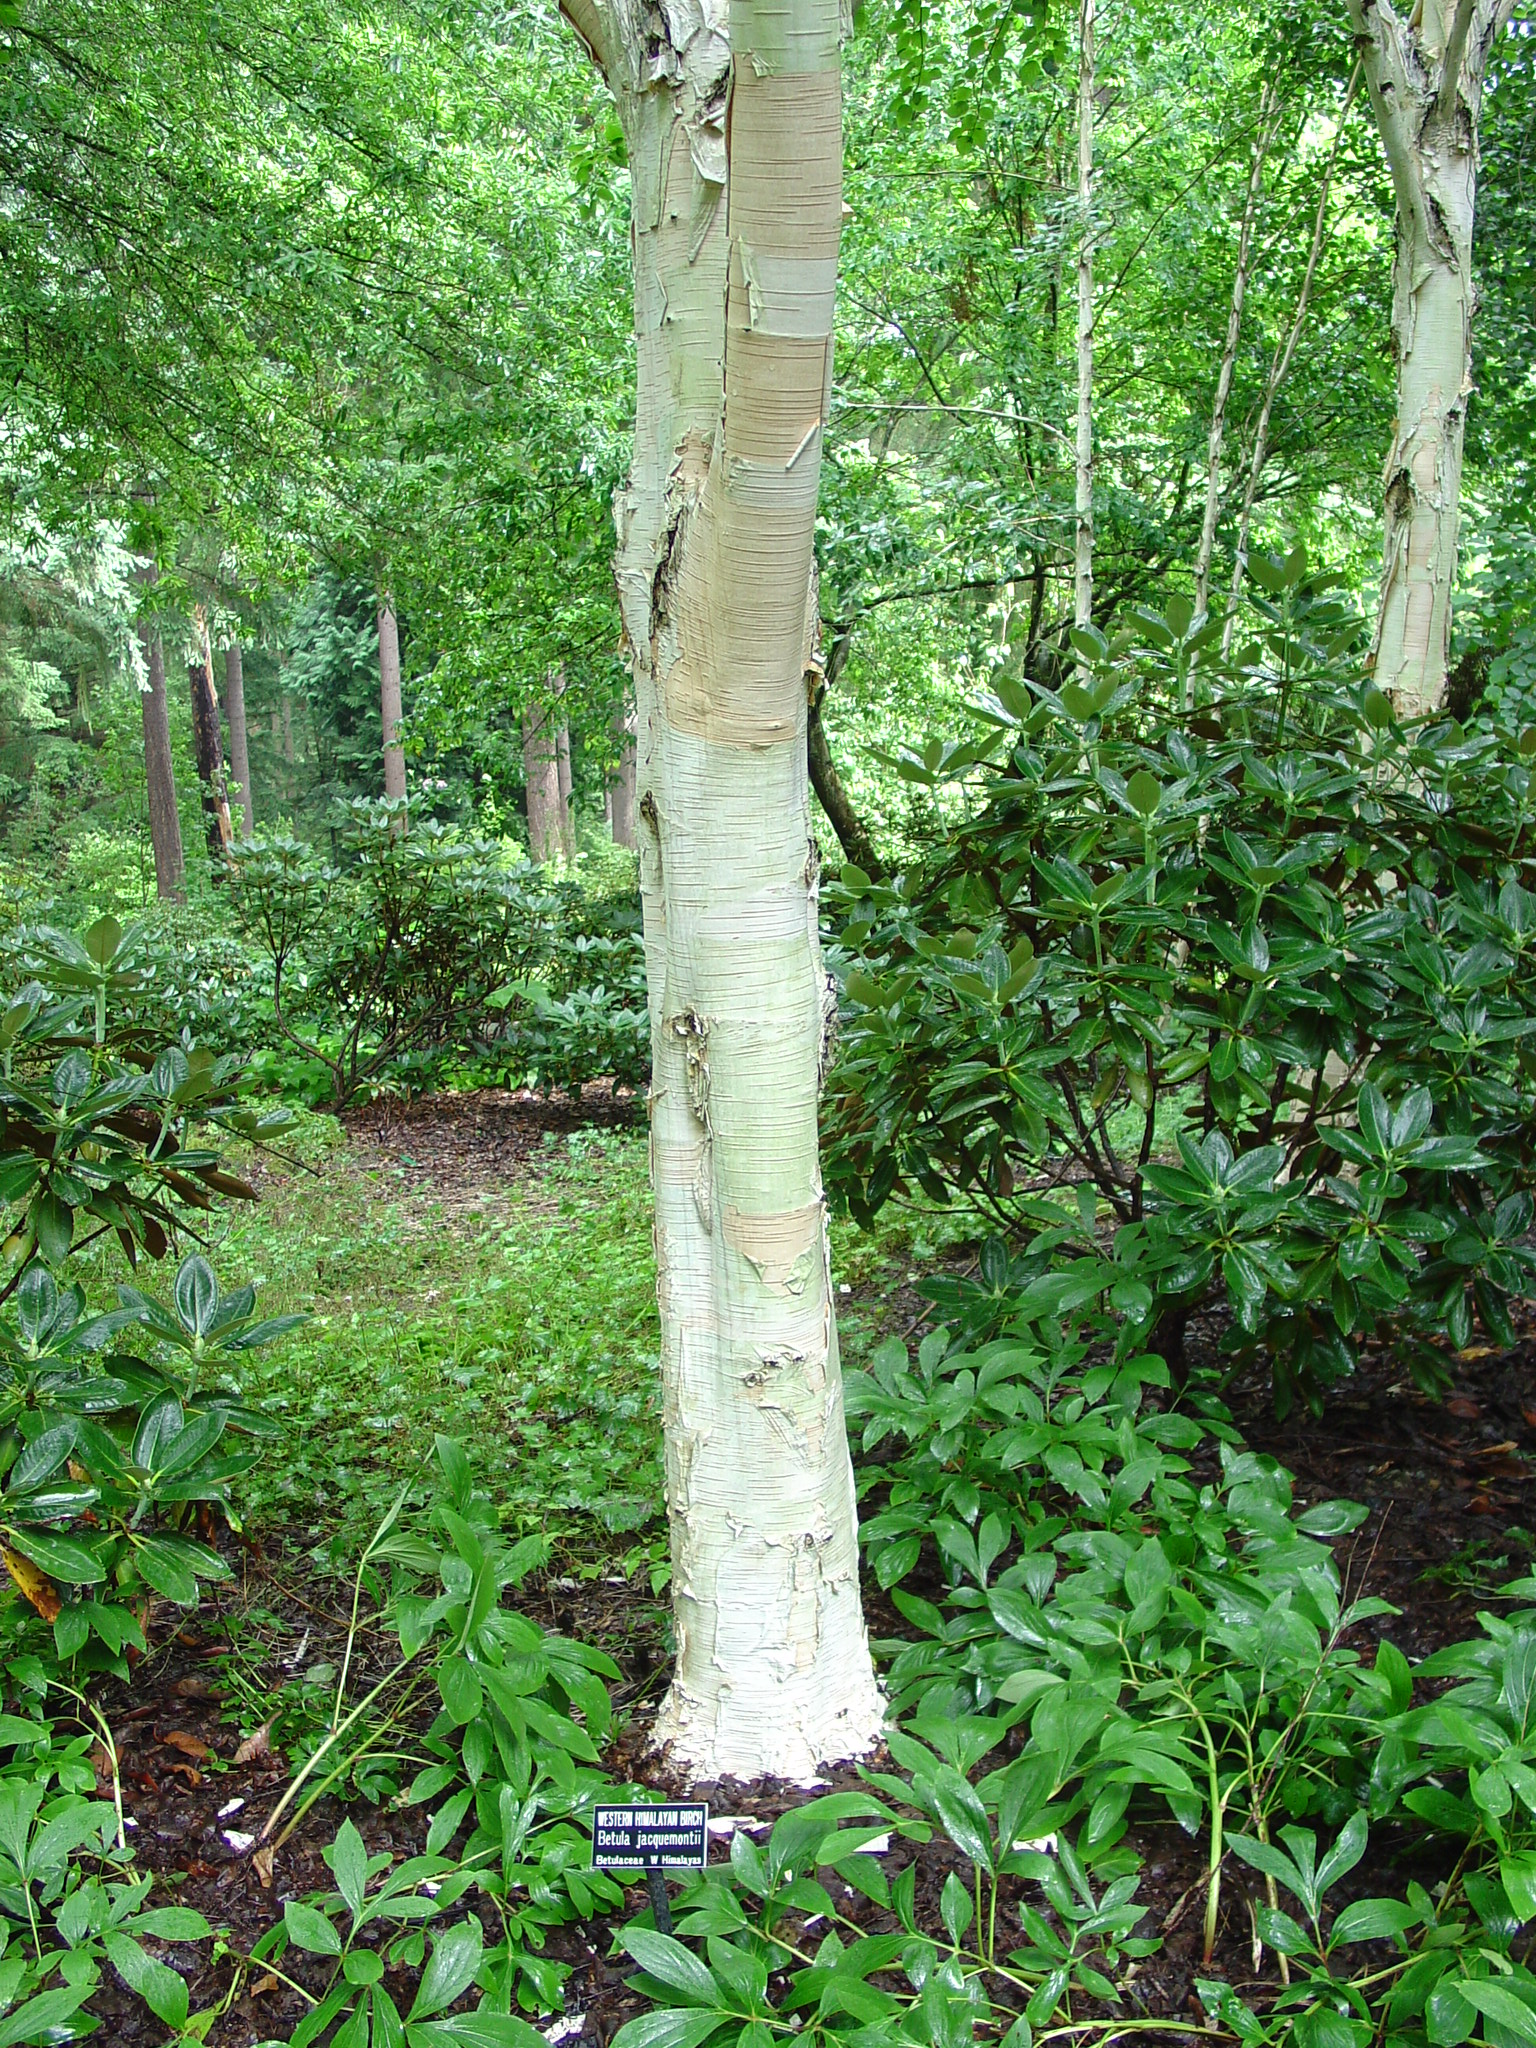 Landscaping With Paper Birch Trees : Landscape trees with winter interest what grows there